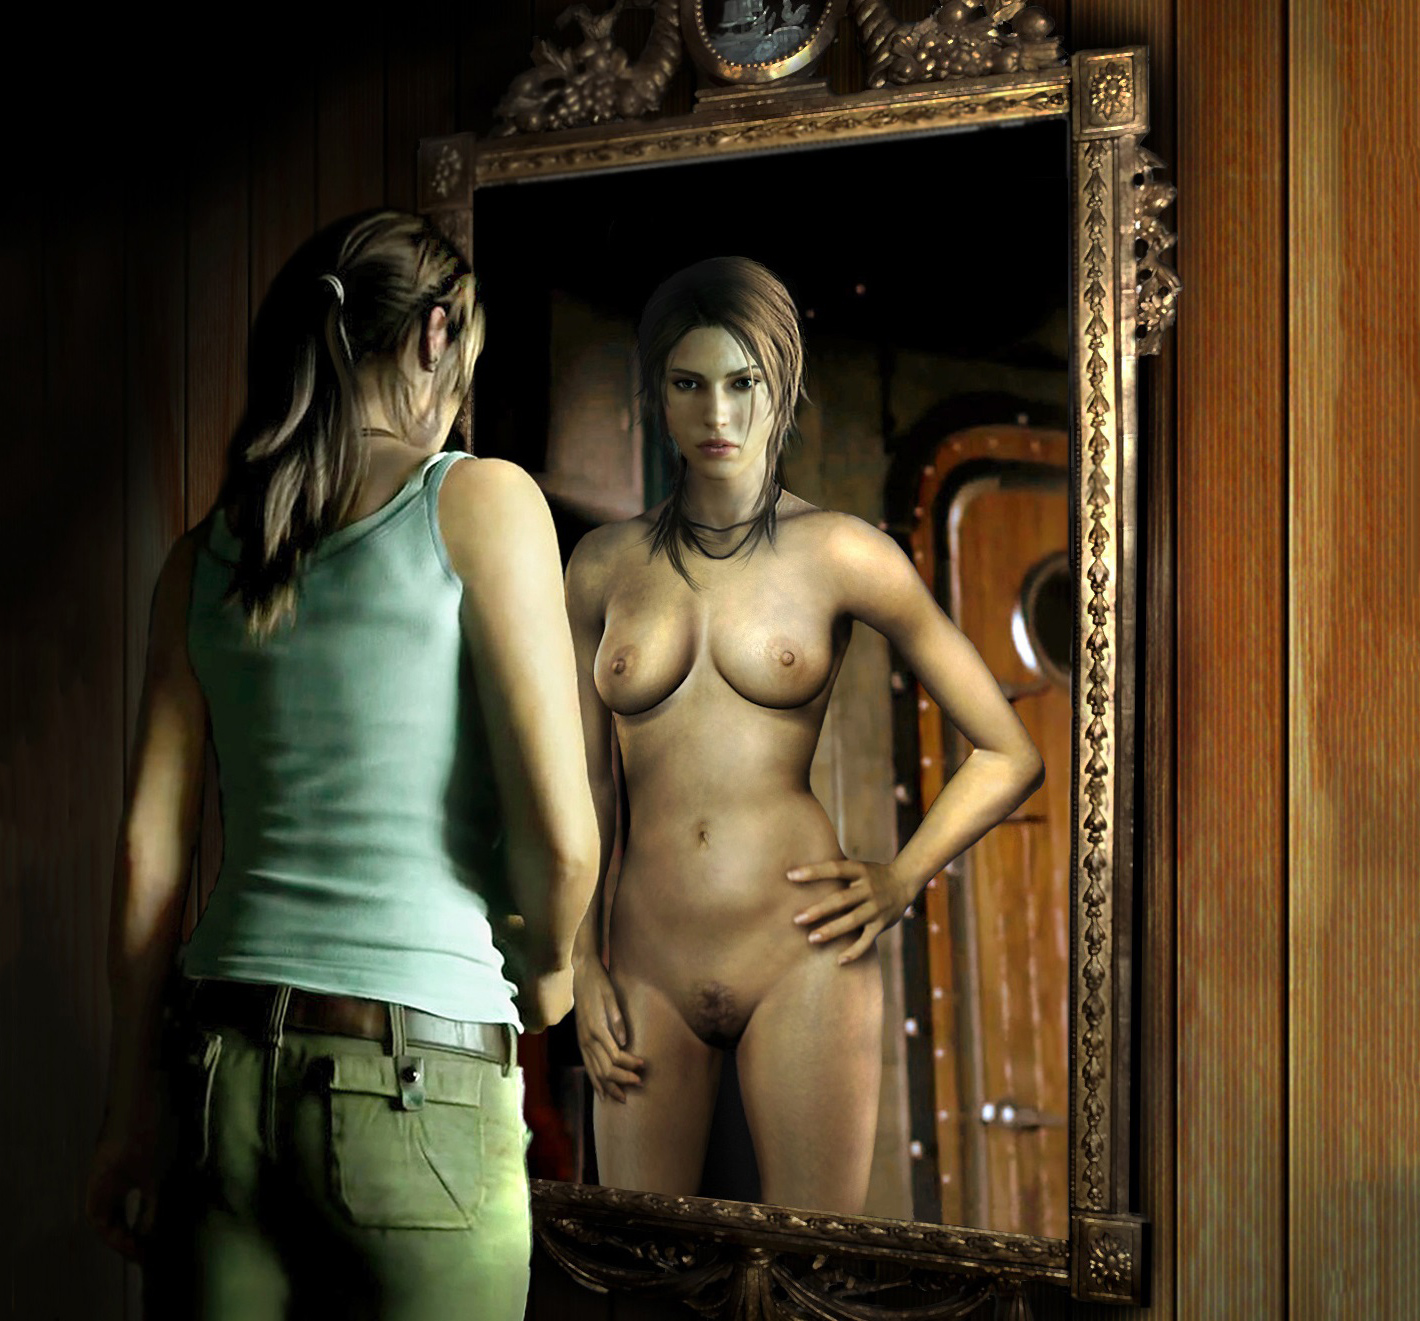 Tomb raider nu exposed galleries